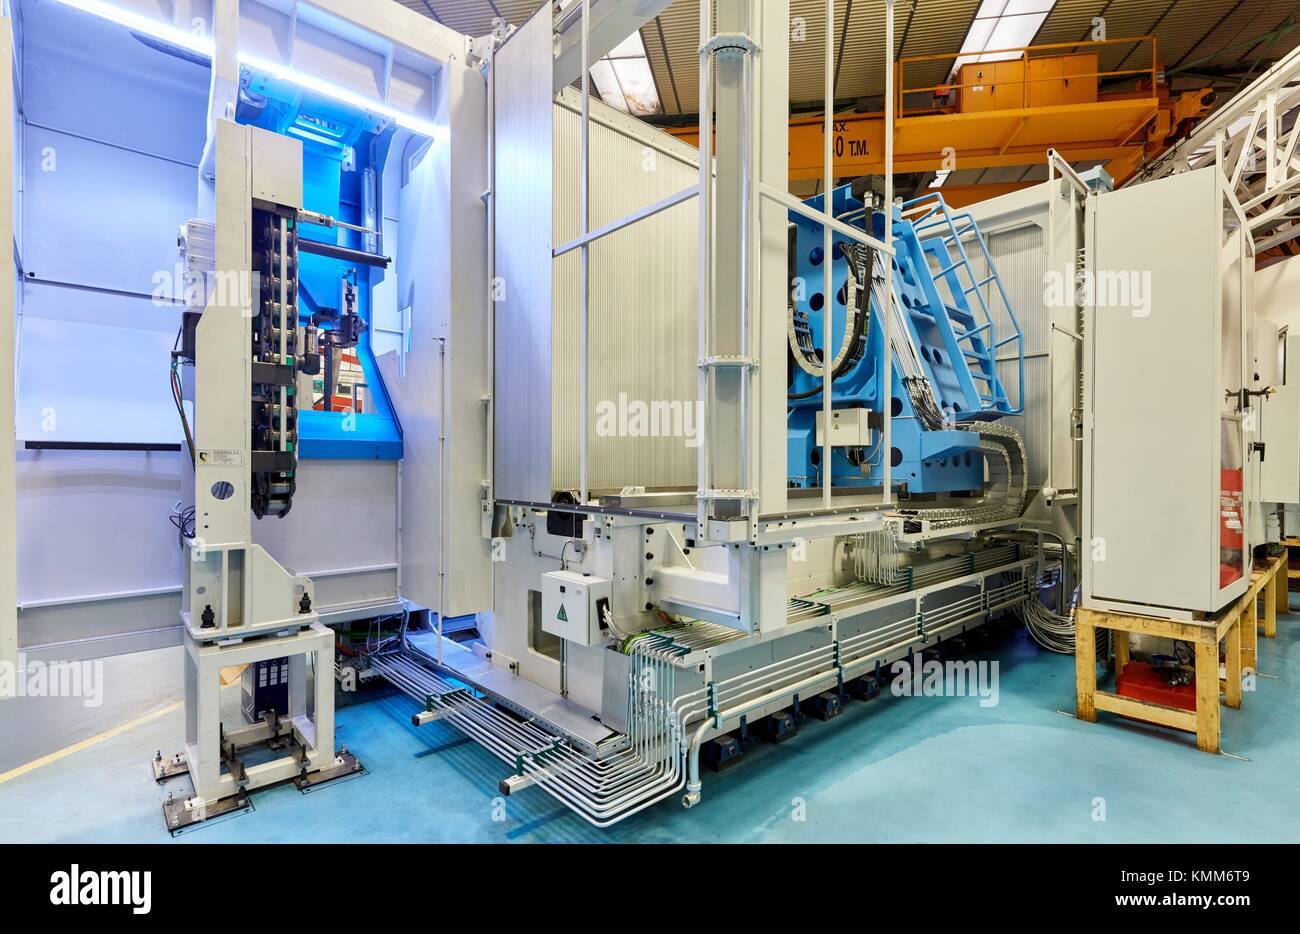 Machining Centre. CNC. Horizontal turning and Milling lathe. Design, manufacture and installation of machine tools. - Stock Image